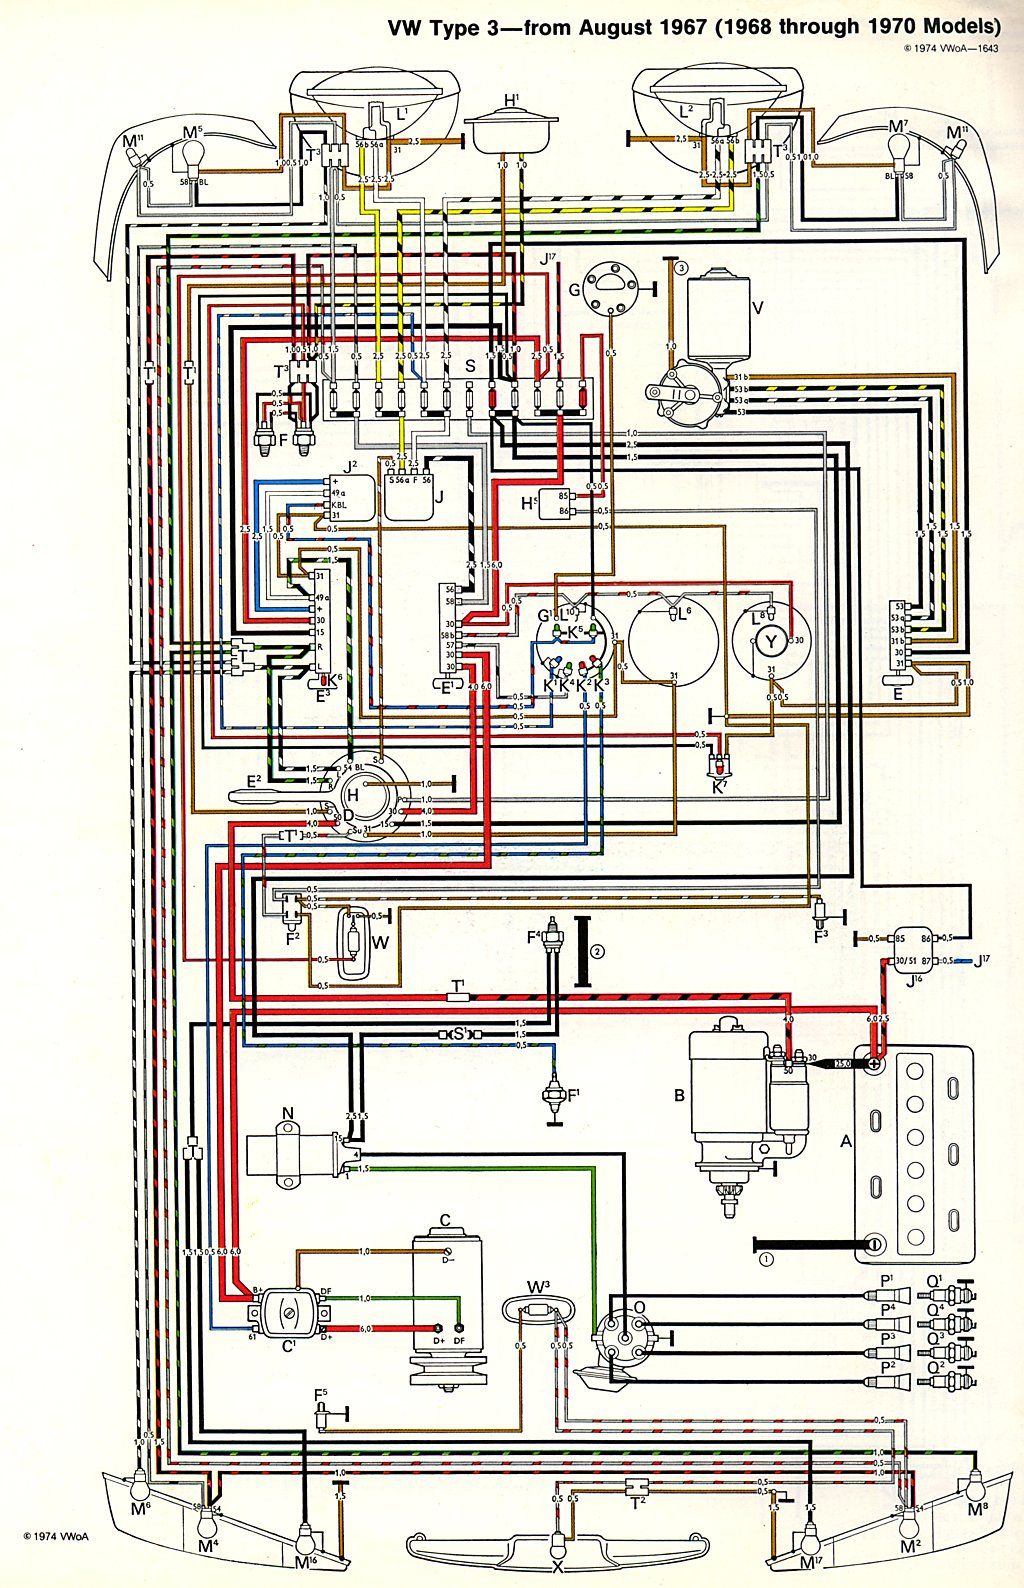 Vw Dash Wiring Diagram Schemes Transporter T4 1973 Type 3 Pictures U2022 Rh Mapavick Co Uk T5 Cam Golf